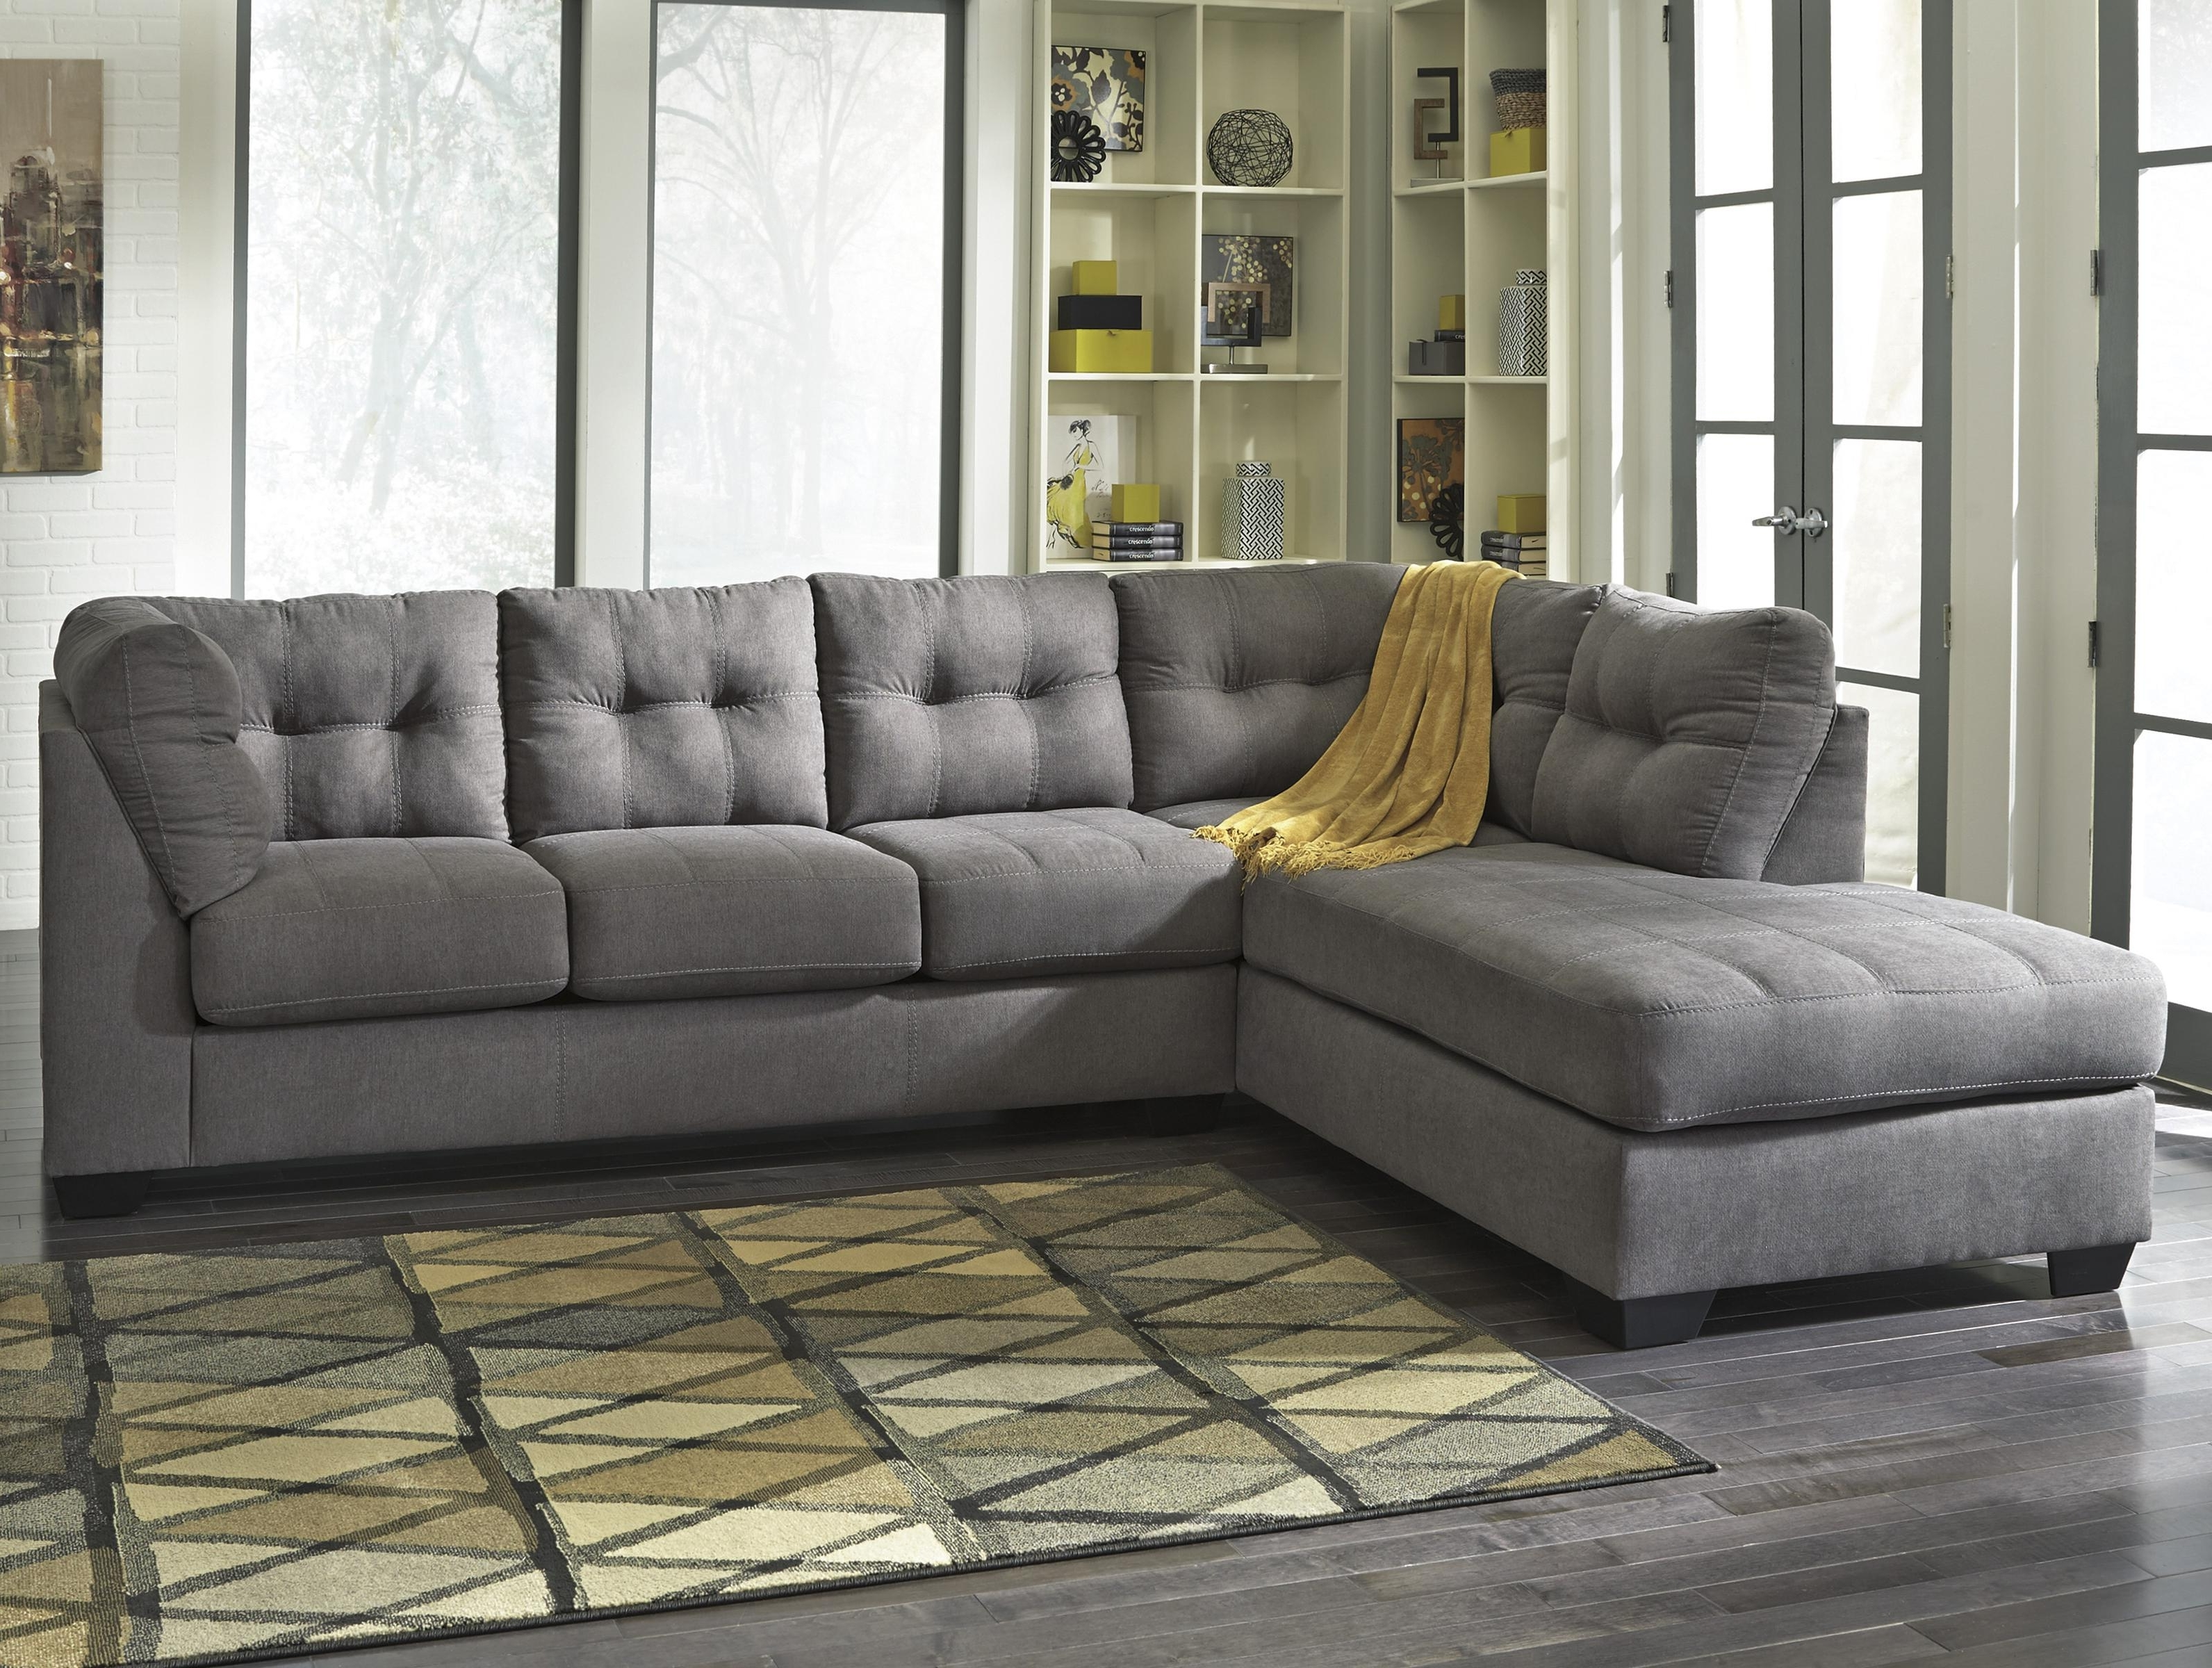 Most Up To Date Jackson Tn Sectional Sofas Intended For Benchcraftashley Maier – Charcoal 2 Piece Sectional With Left (View 12 of 15)